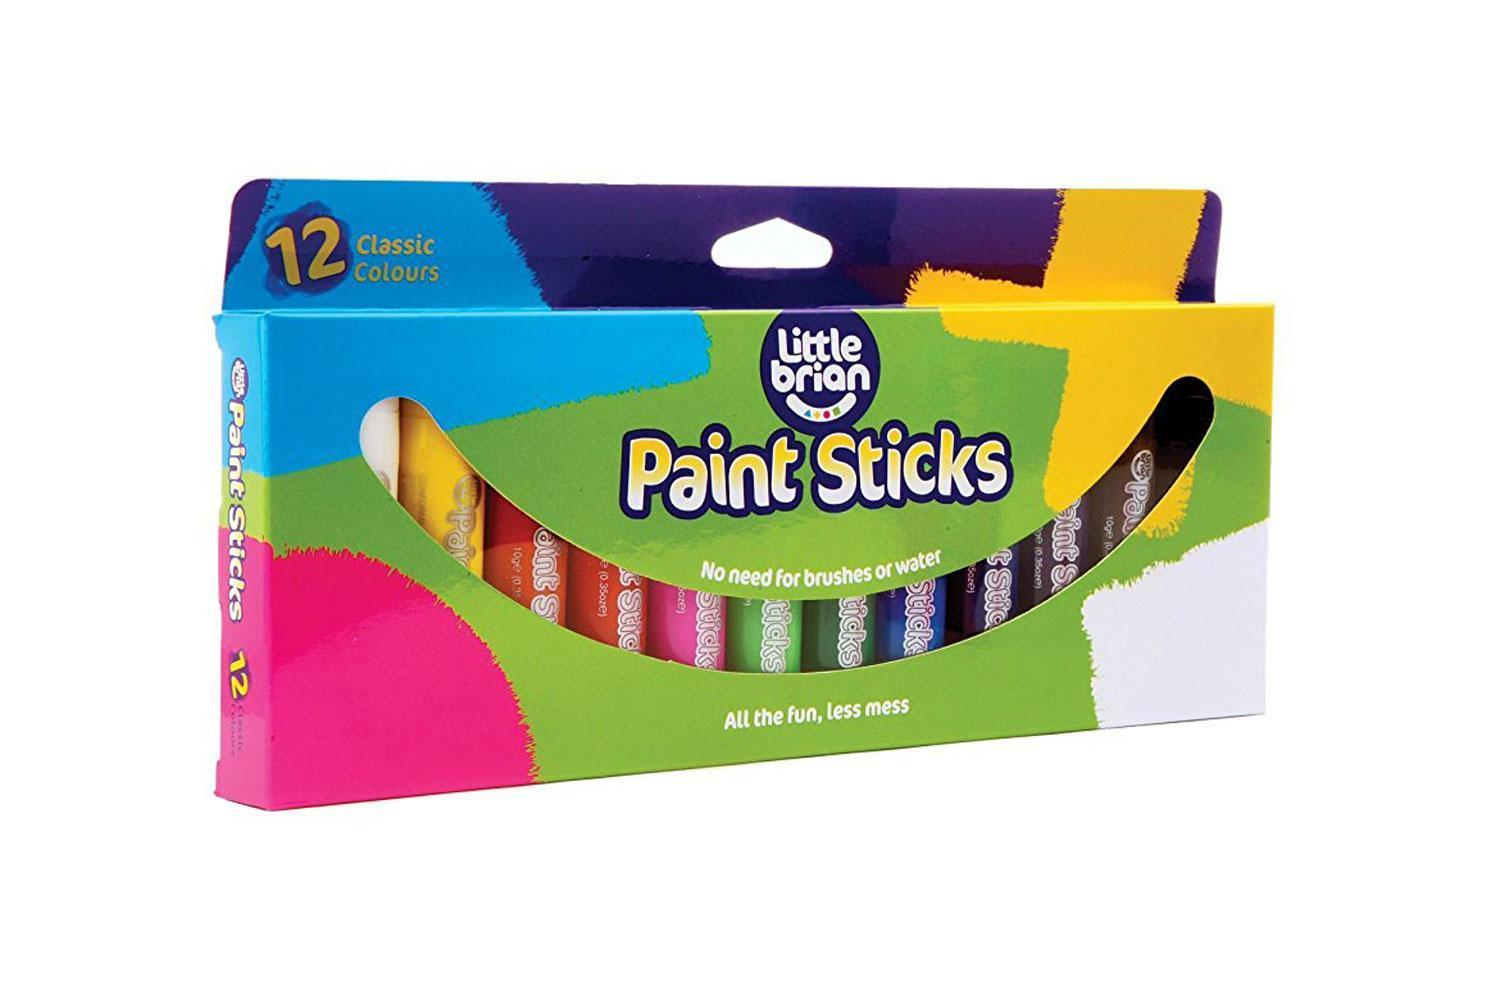 Little Brian: Paint Sticks - Classic (12 Pack) image